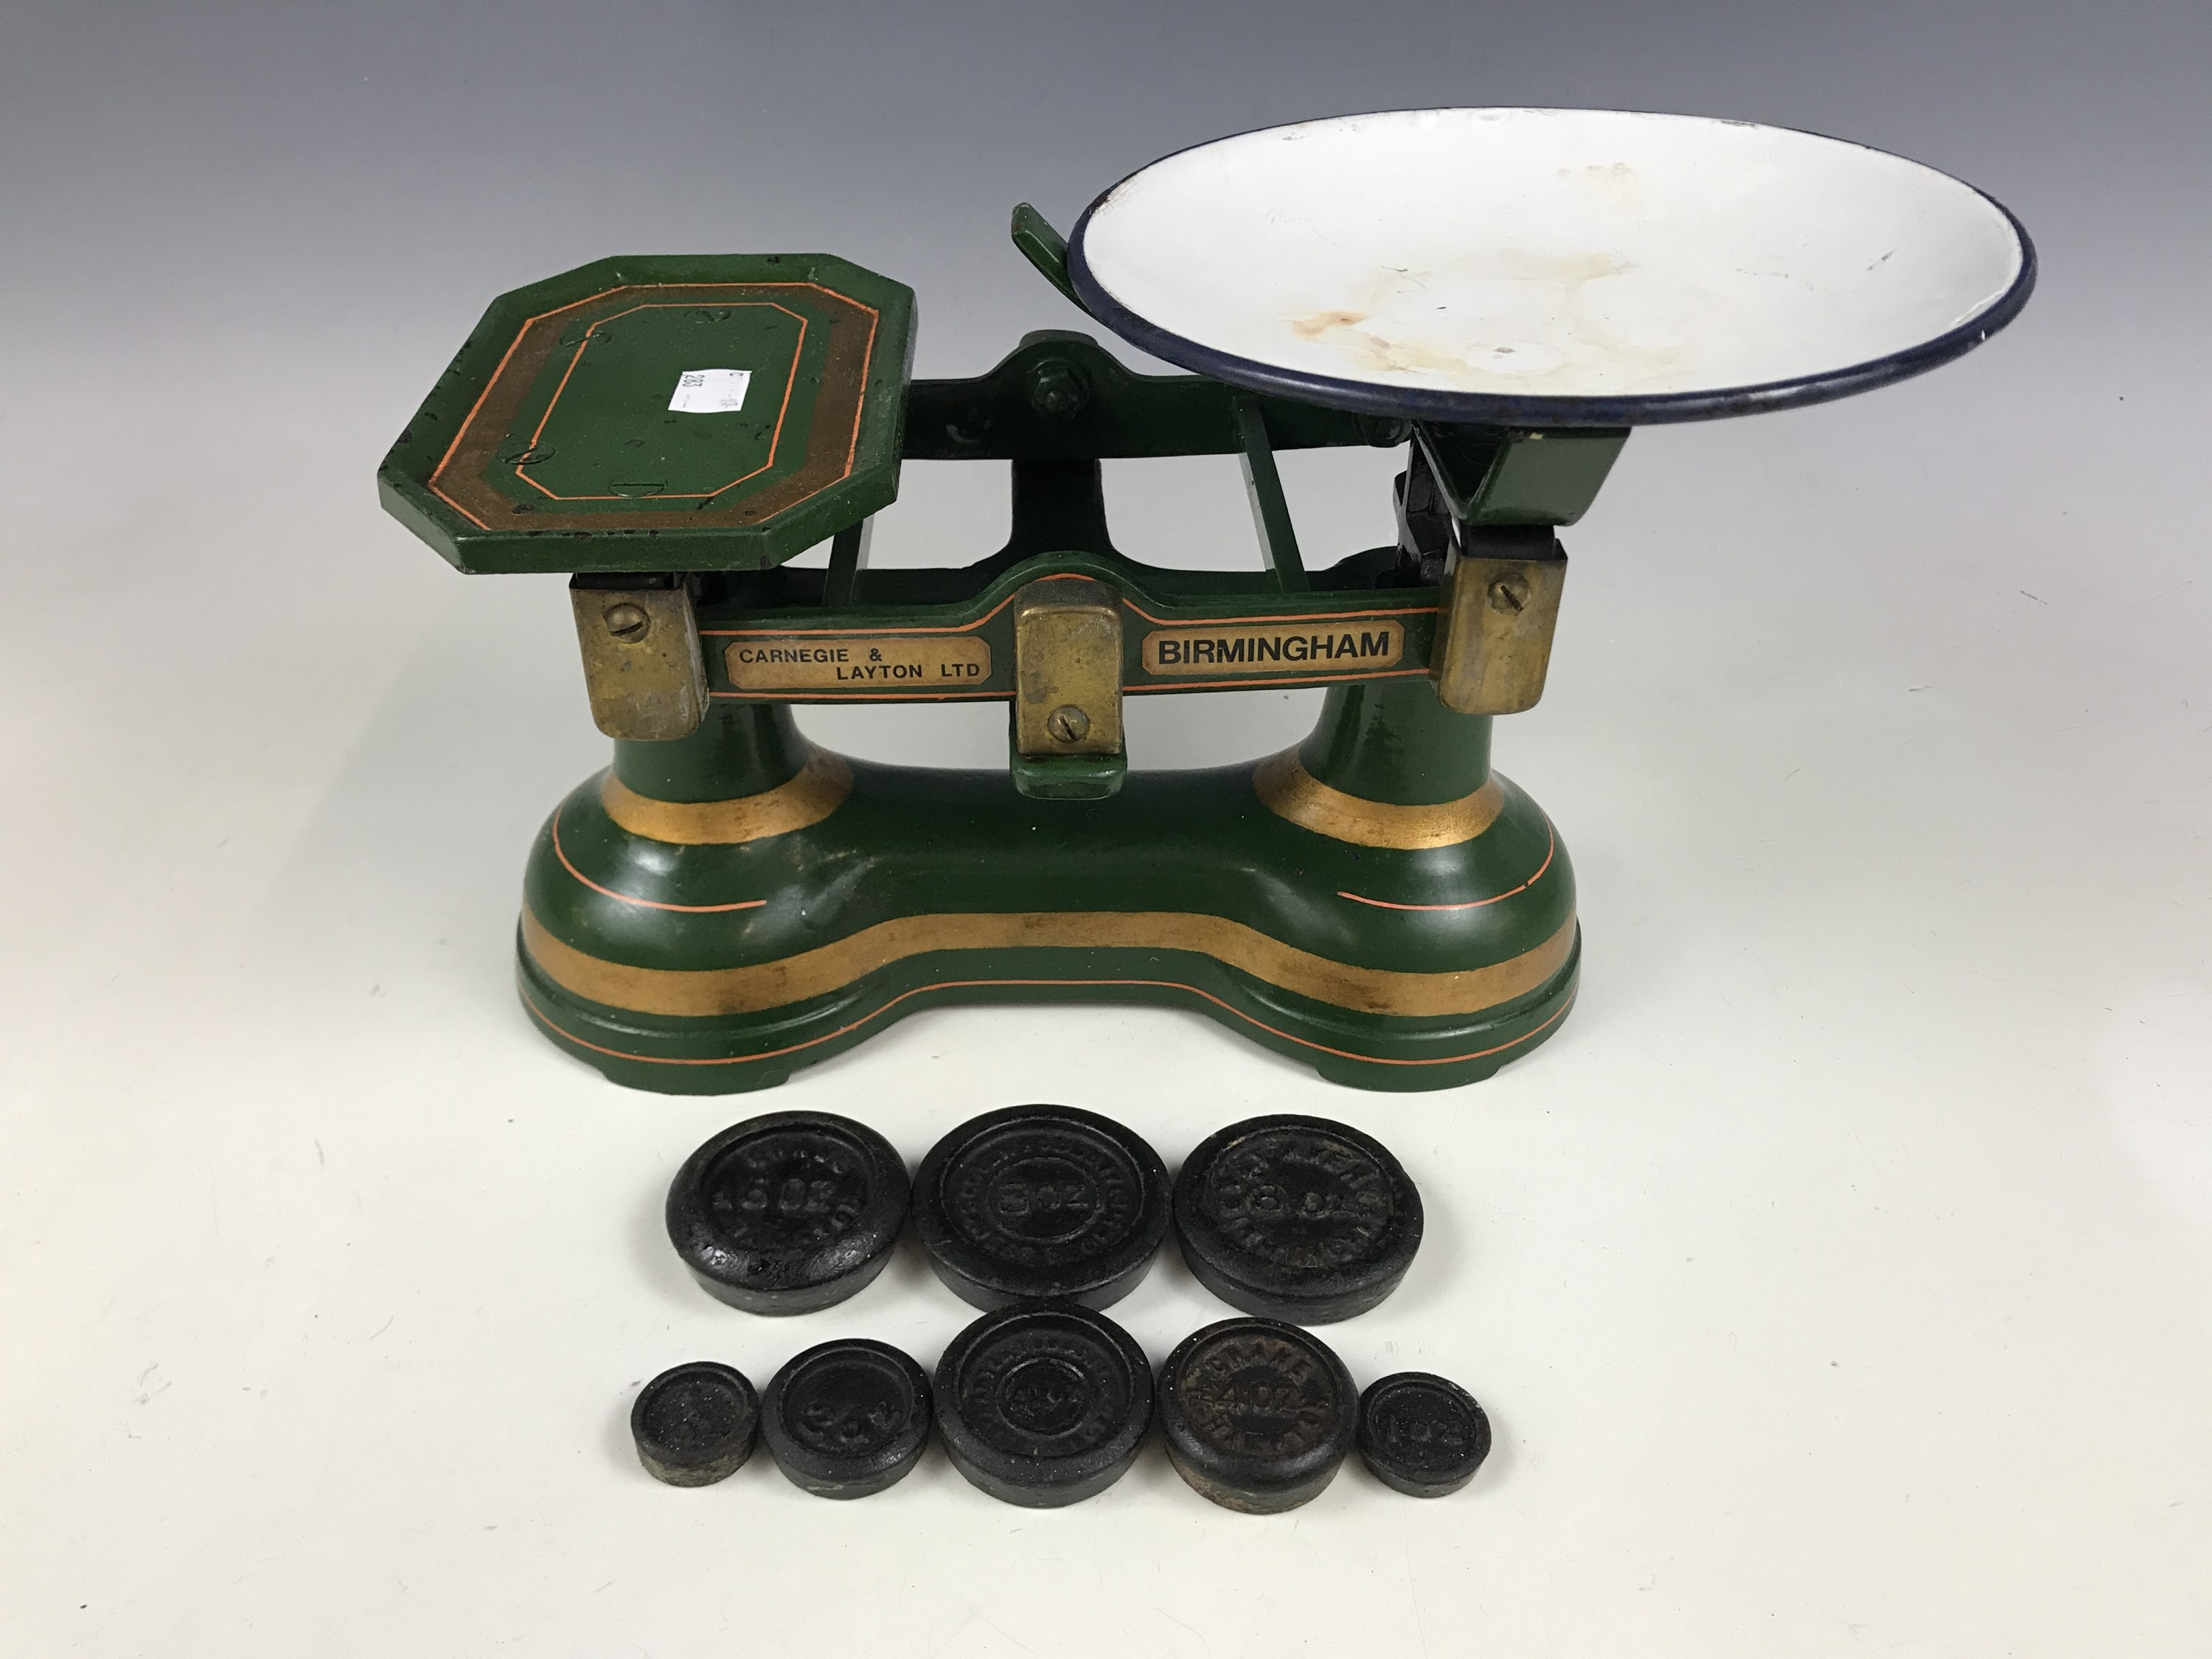 Lot 10 - Carnegie & Layton Ltd kitchen scales and weights